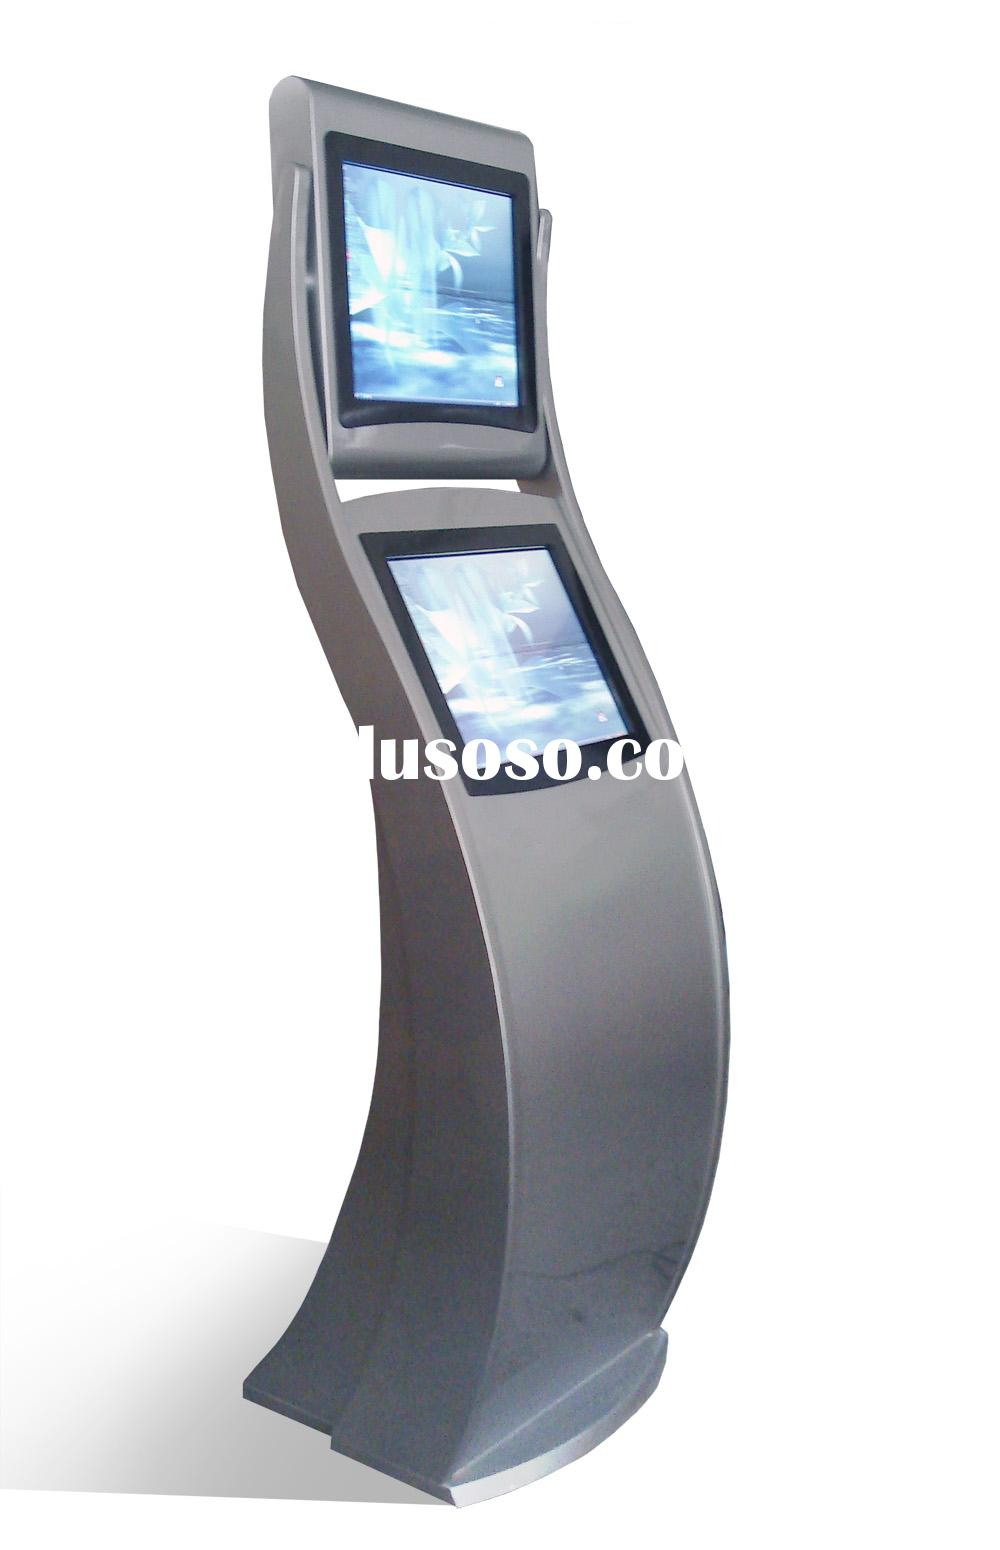 touchscreen Kiosk with Intergrated A4 laser printer/ Dual screen photo kiosk/ Dual screen touch scre